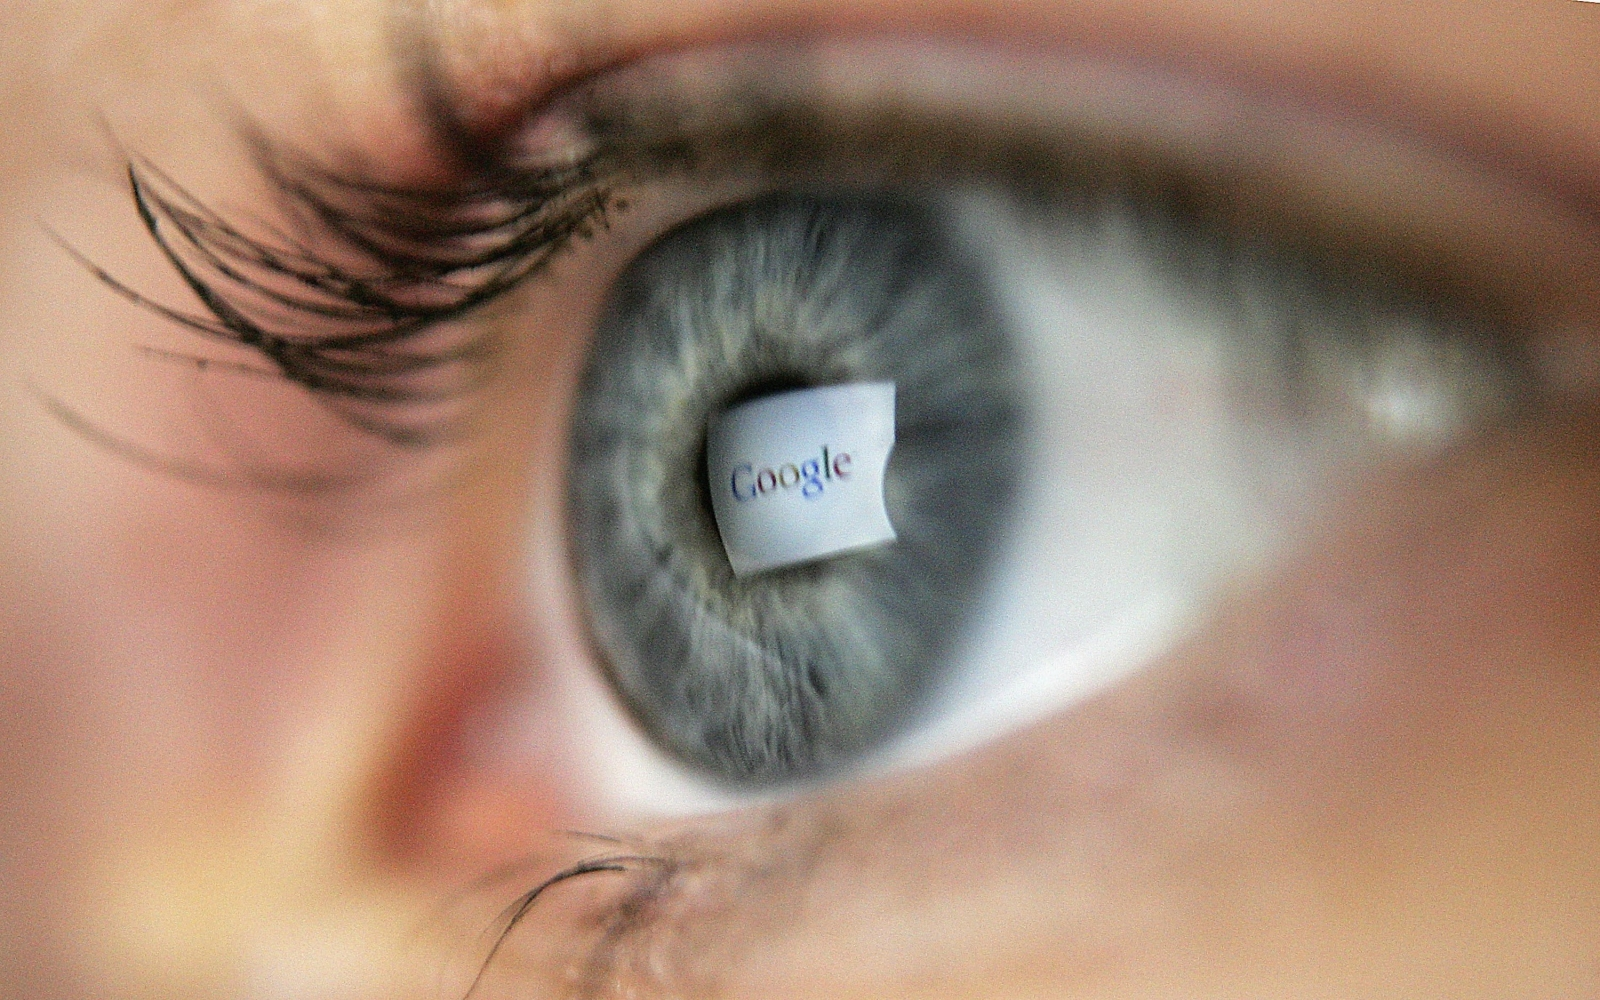 Google eyeball